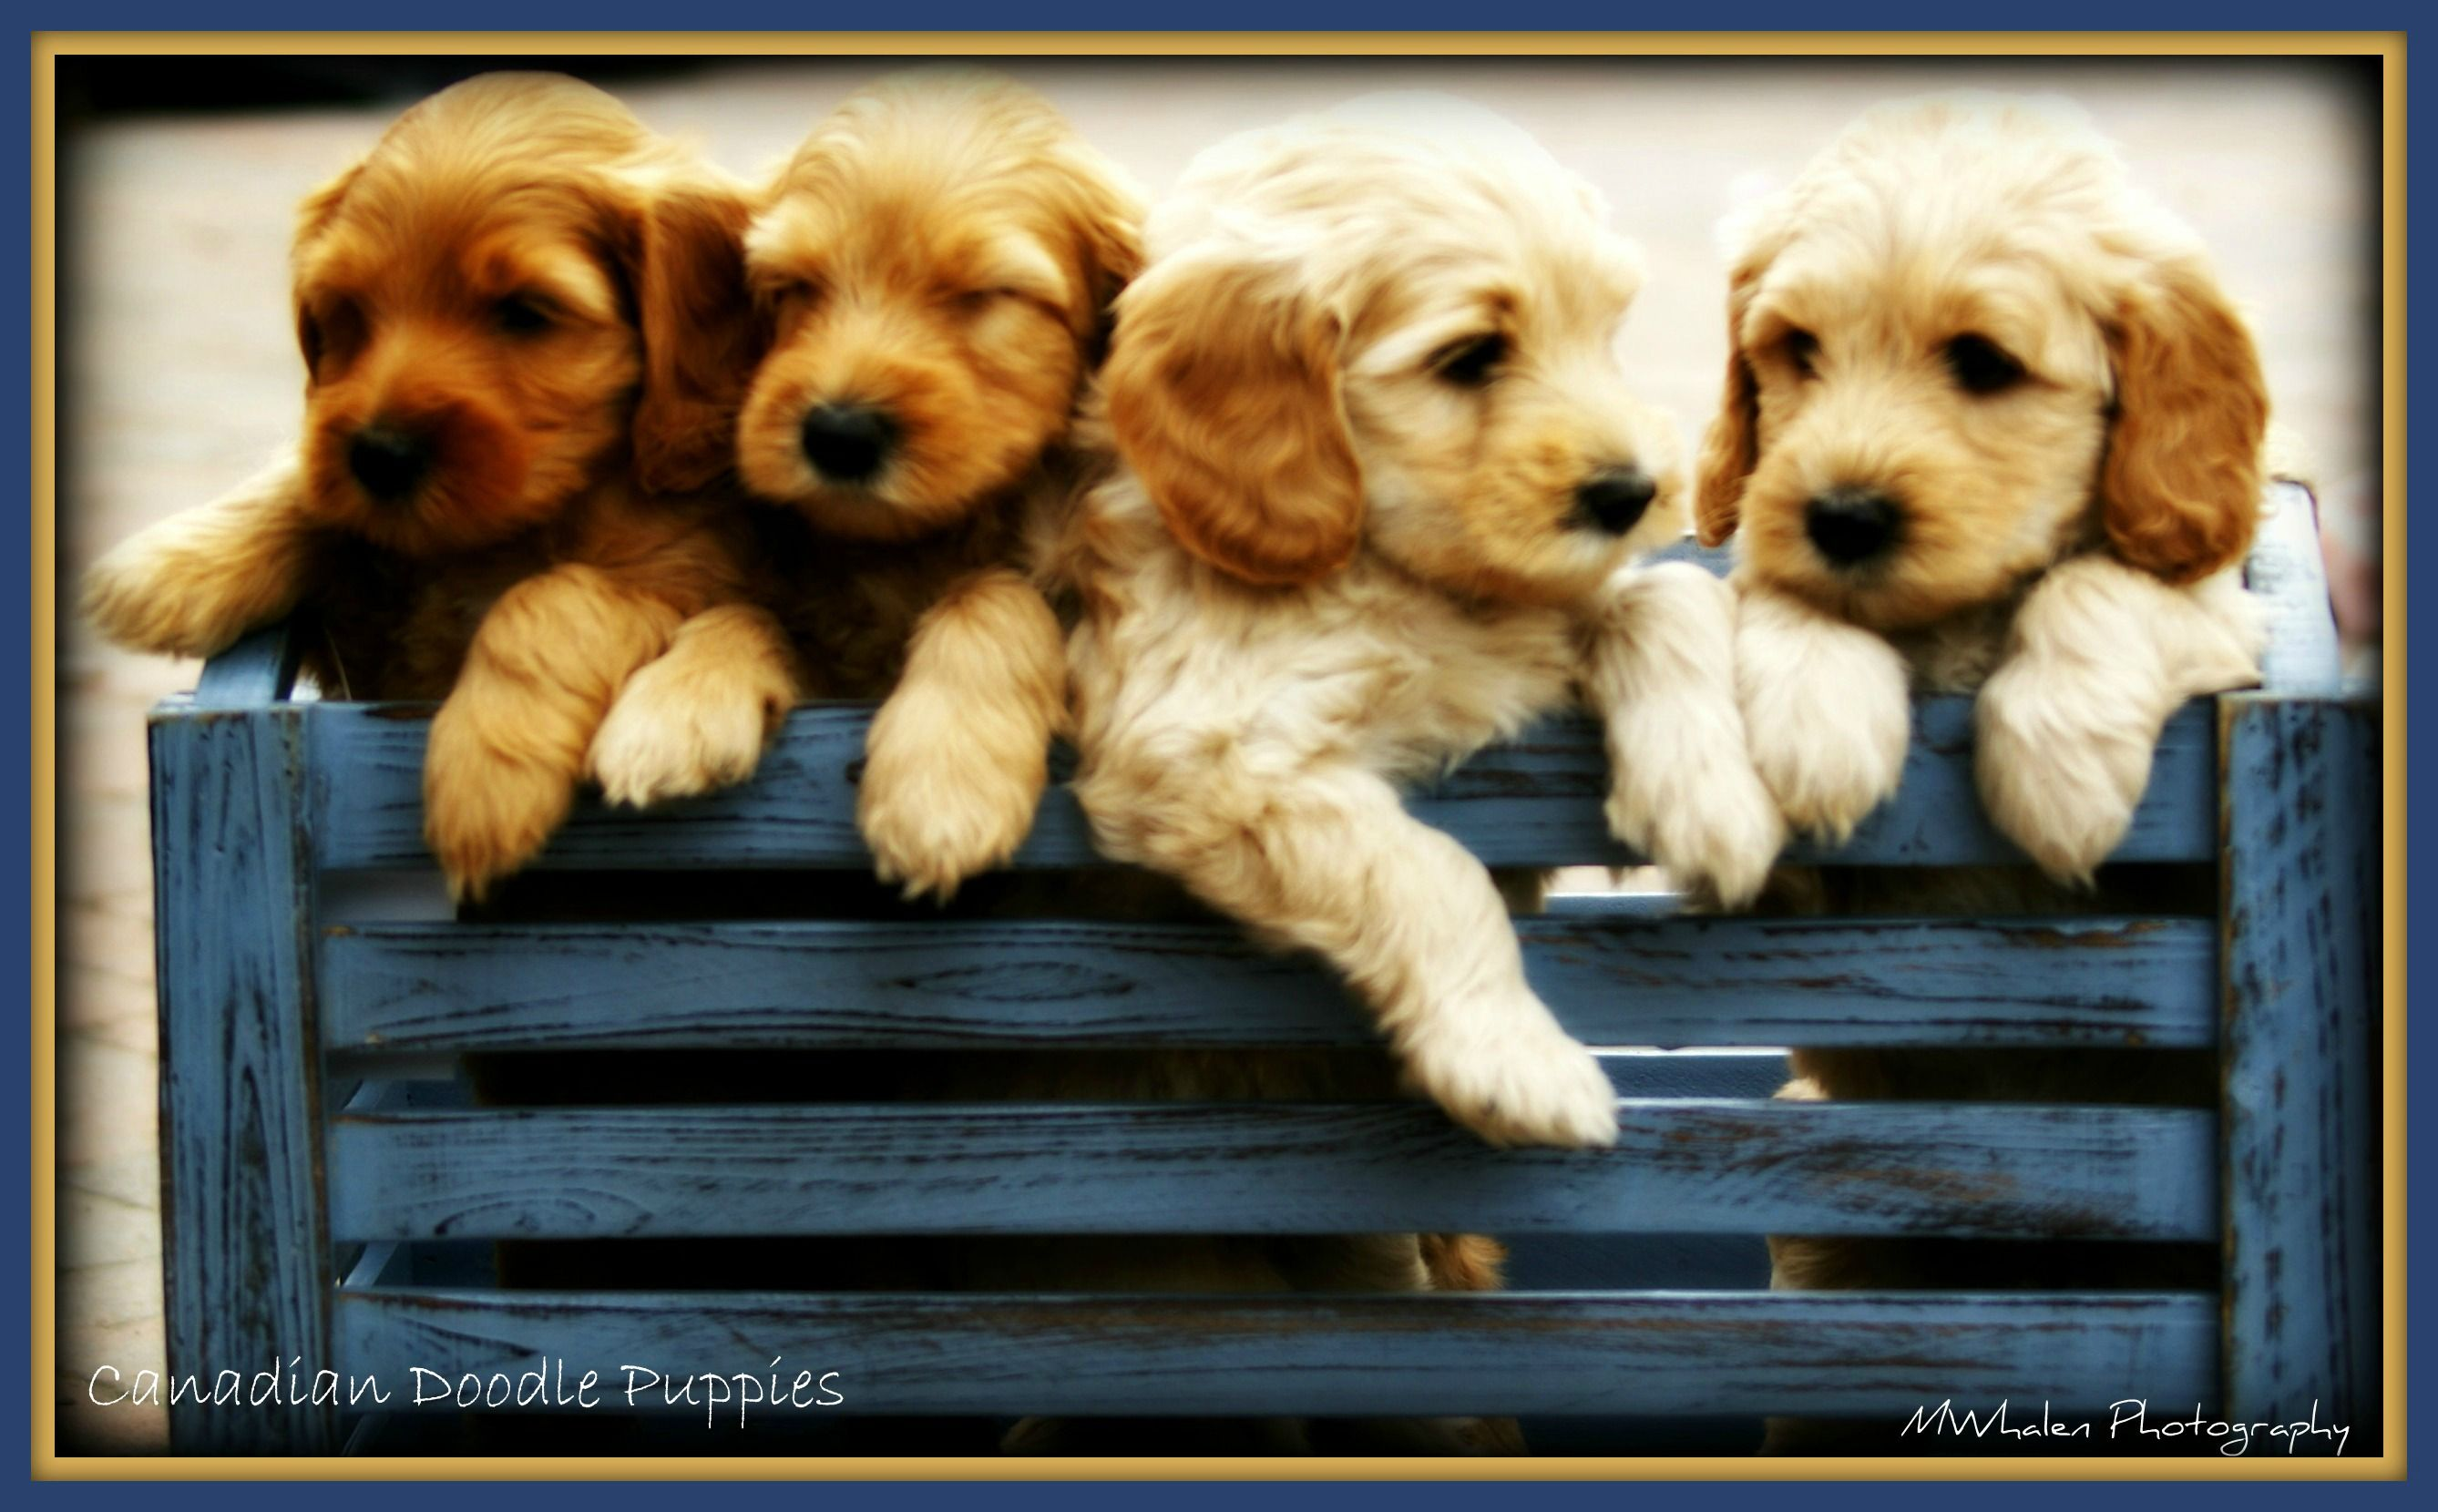 Canadian Doodle Puppies Ontario Breeder Of Labradoodles